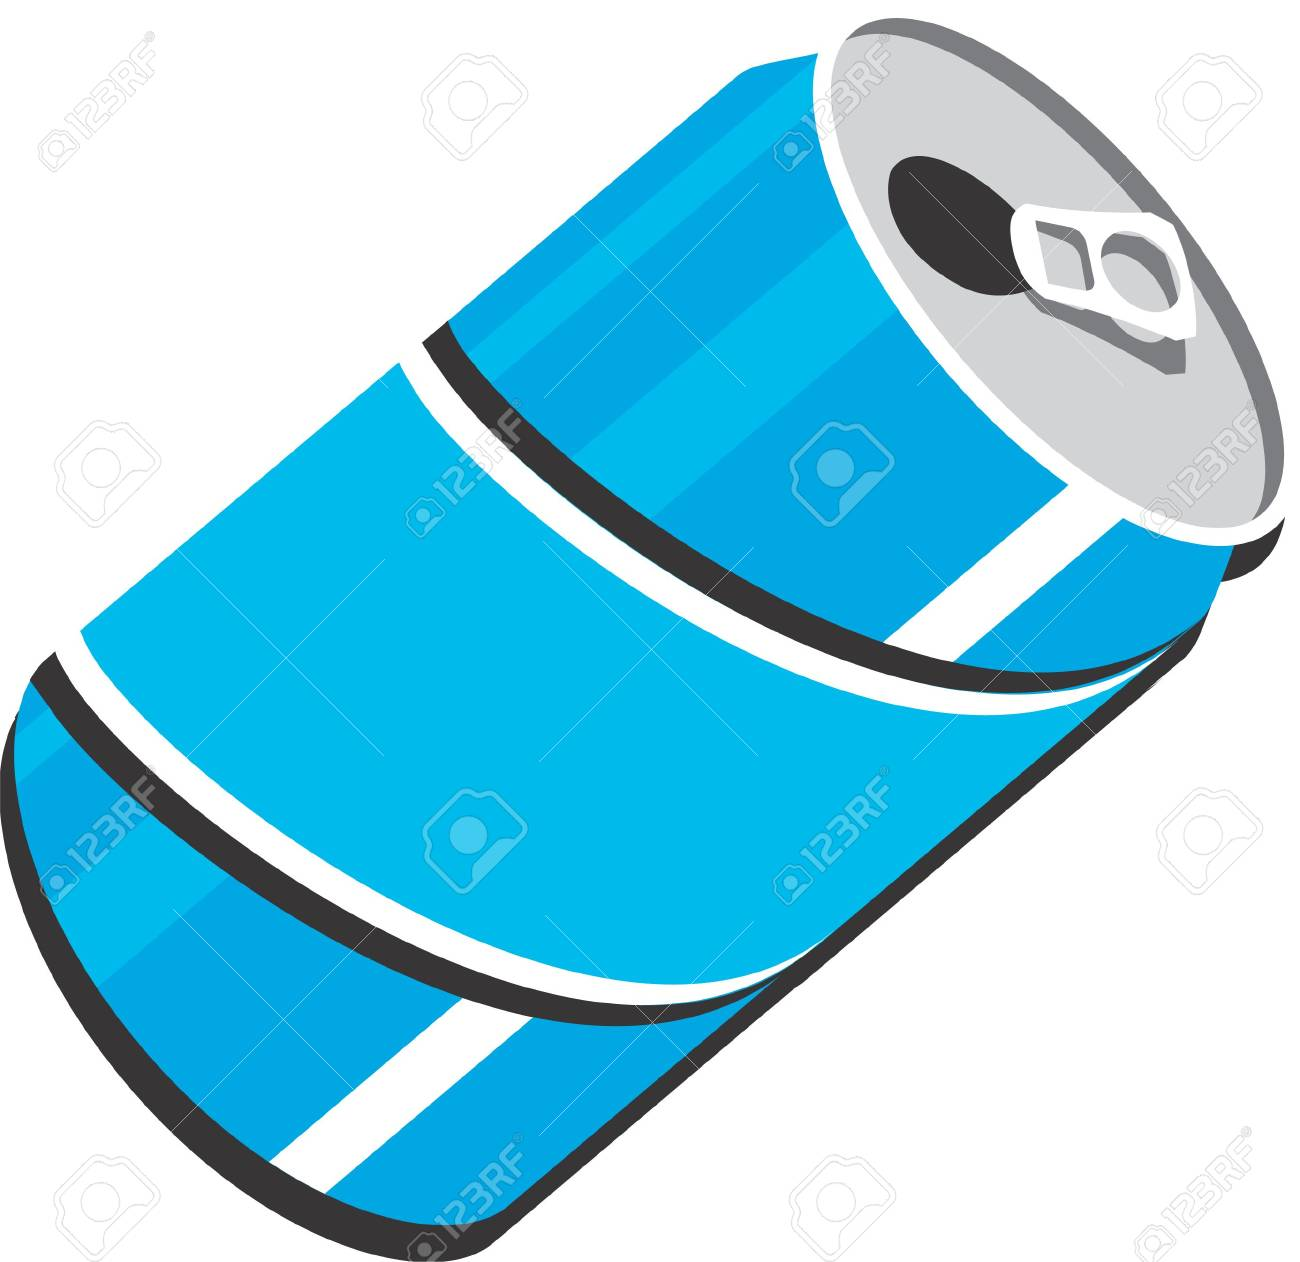 Clip Art Soda Can Clipart pop soda can clip art design illustration for use in web or print print